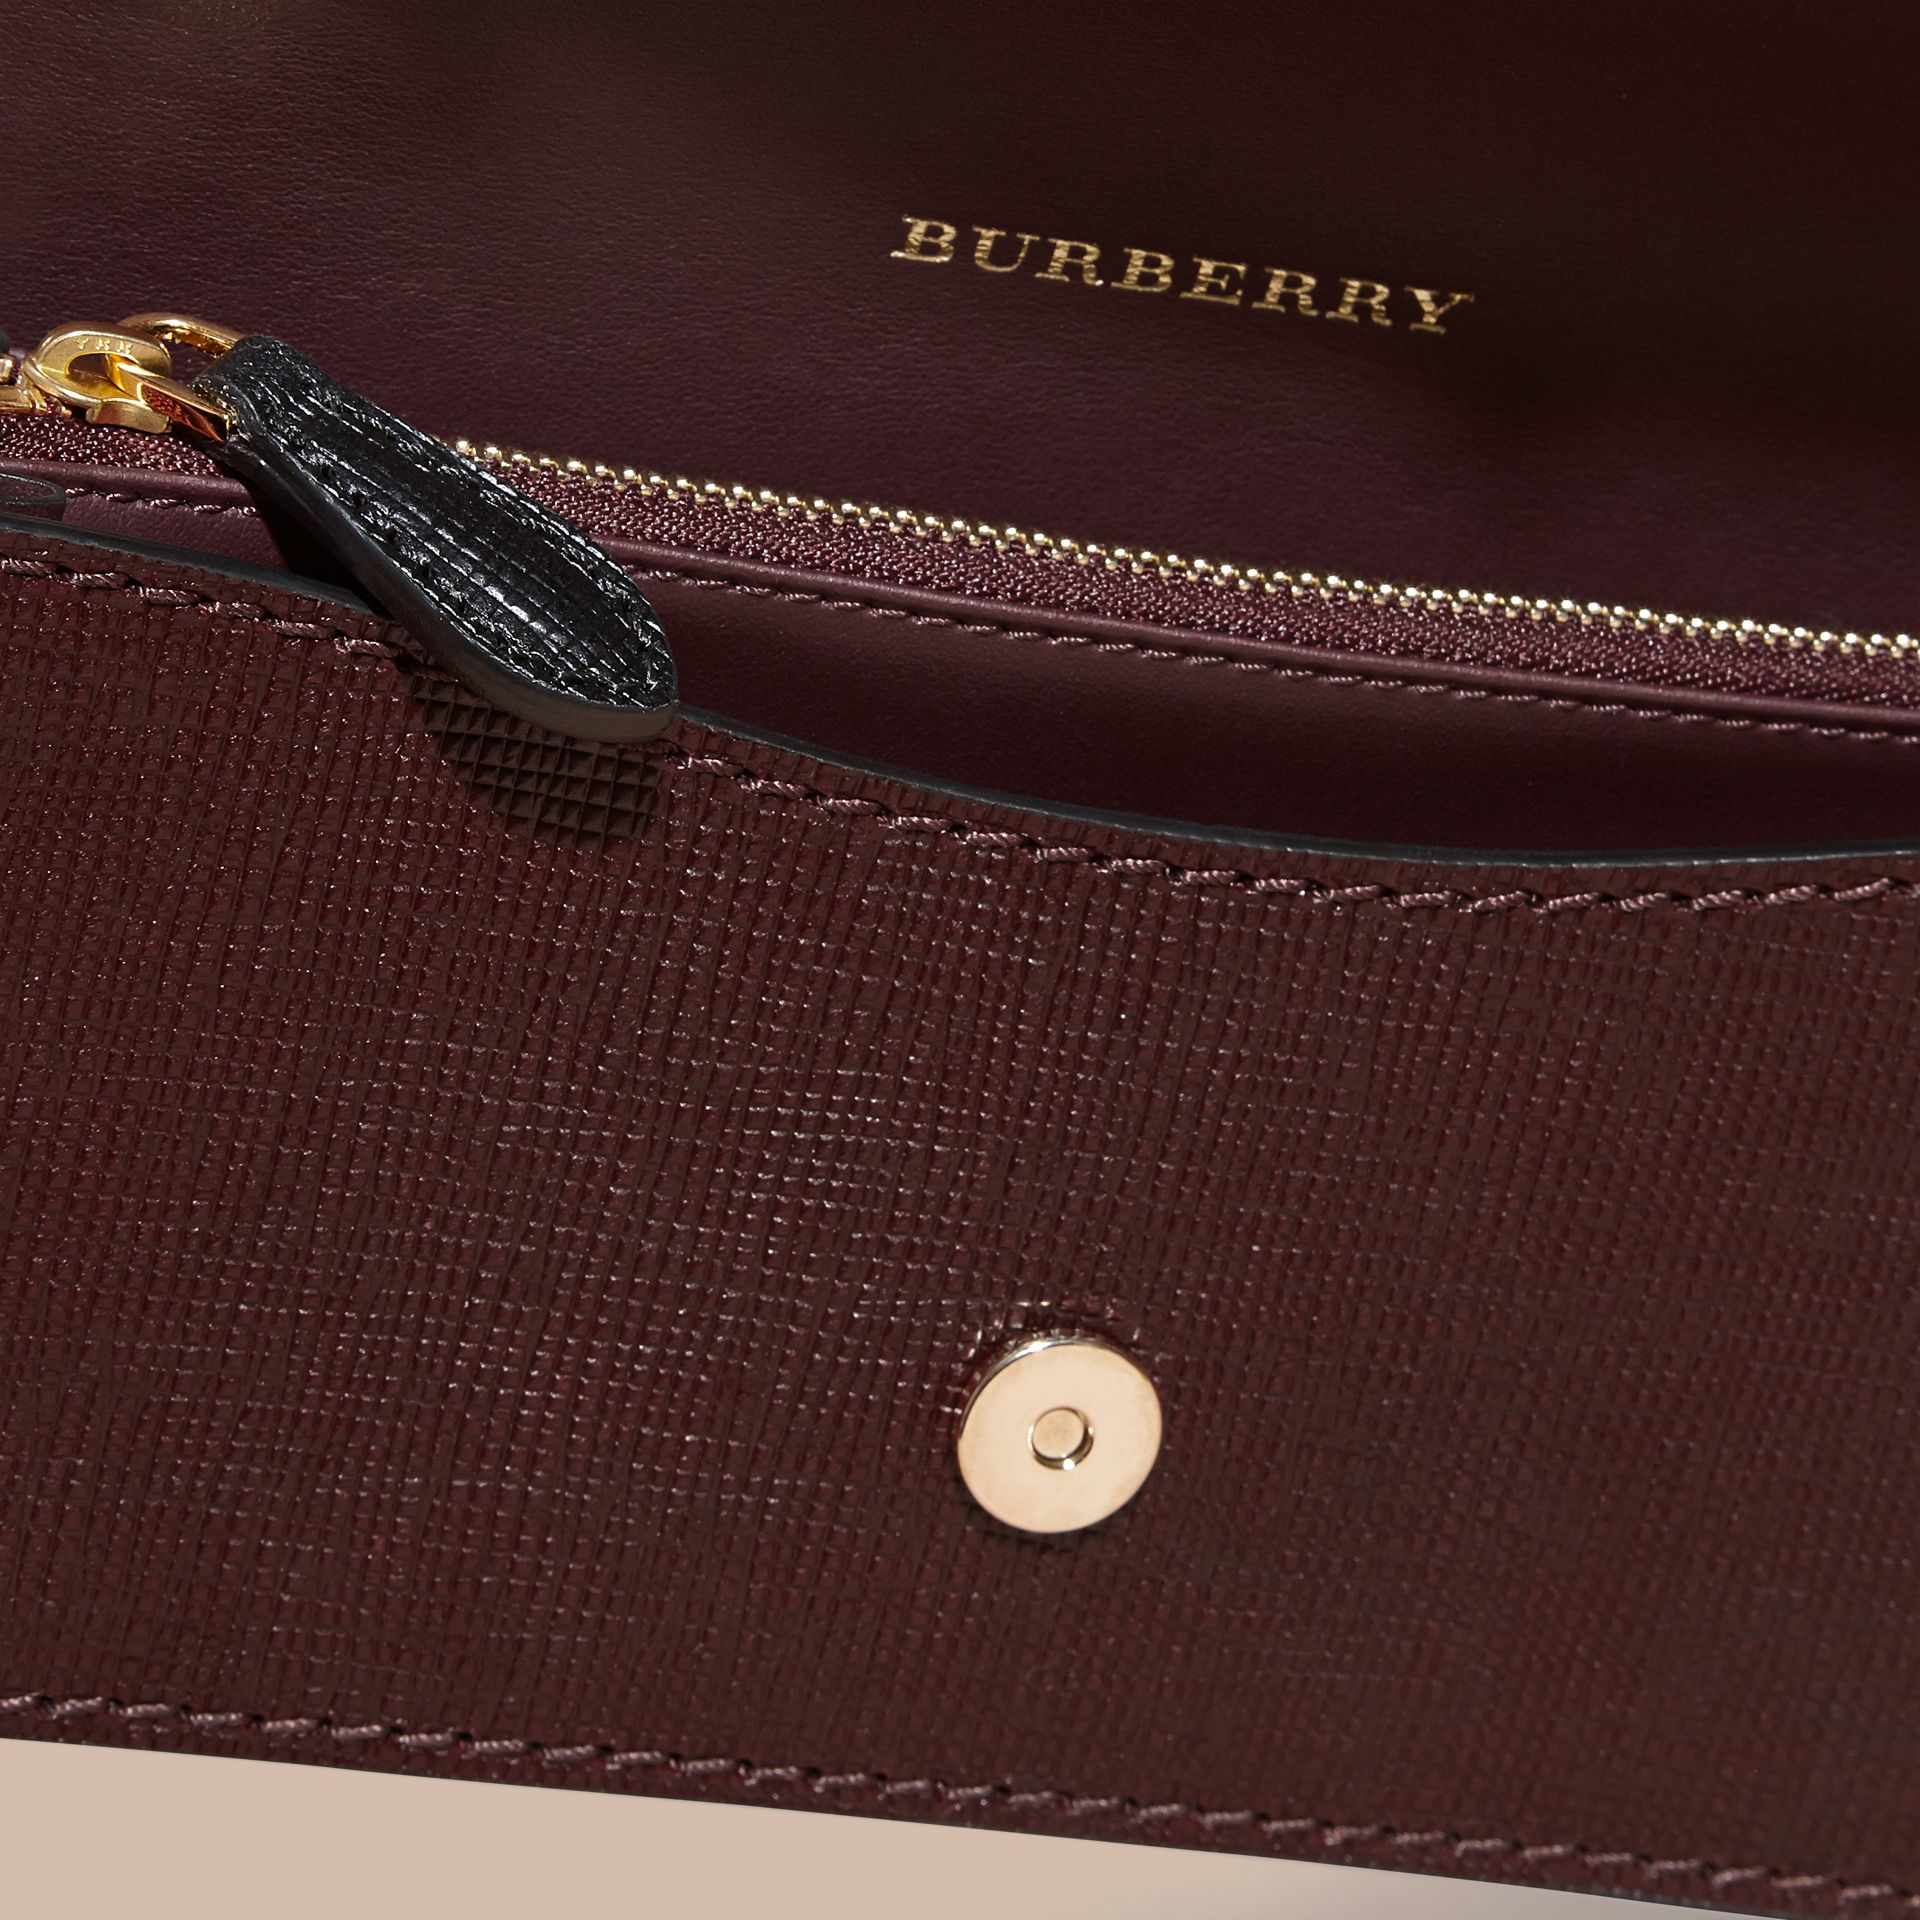 Burgundy/black The Small Buckle Bag in Textured Leather Burgundy/black - gallery image 6